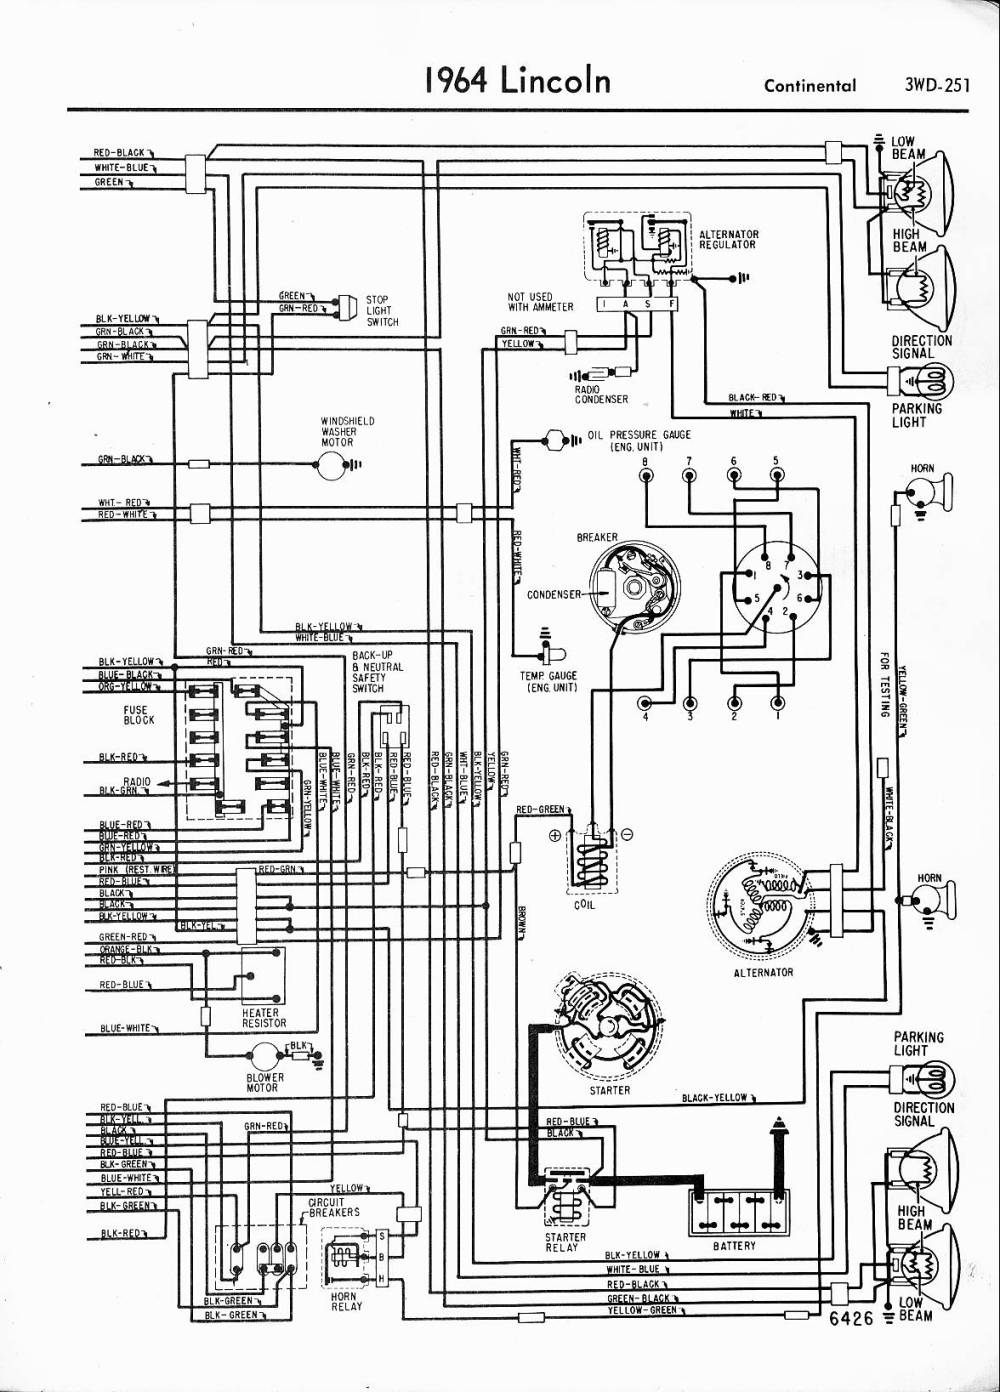 medium resolution of wiring diagram for a 1989 lincoln mark 7 wiring diagram used 1989 lincoln mark vii fuse box diagram